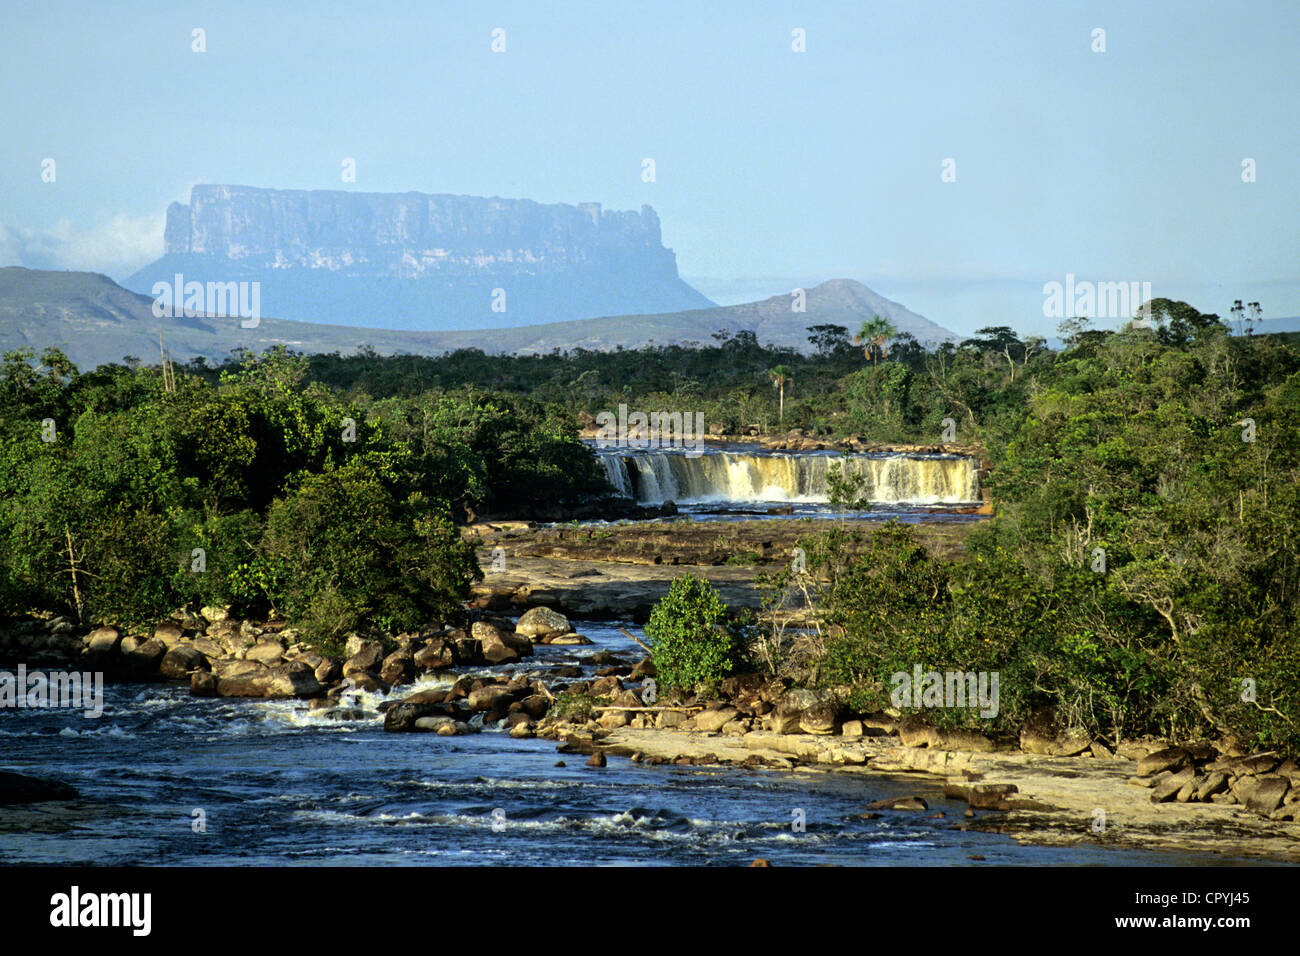 Venezuela, Bolivar State, Gran Sabana Region, Canaima National Park, listed as World Heritage by UNESCO, Tepuy de - Stock Image